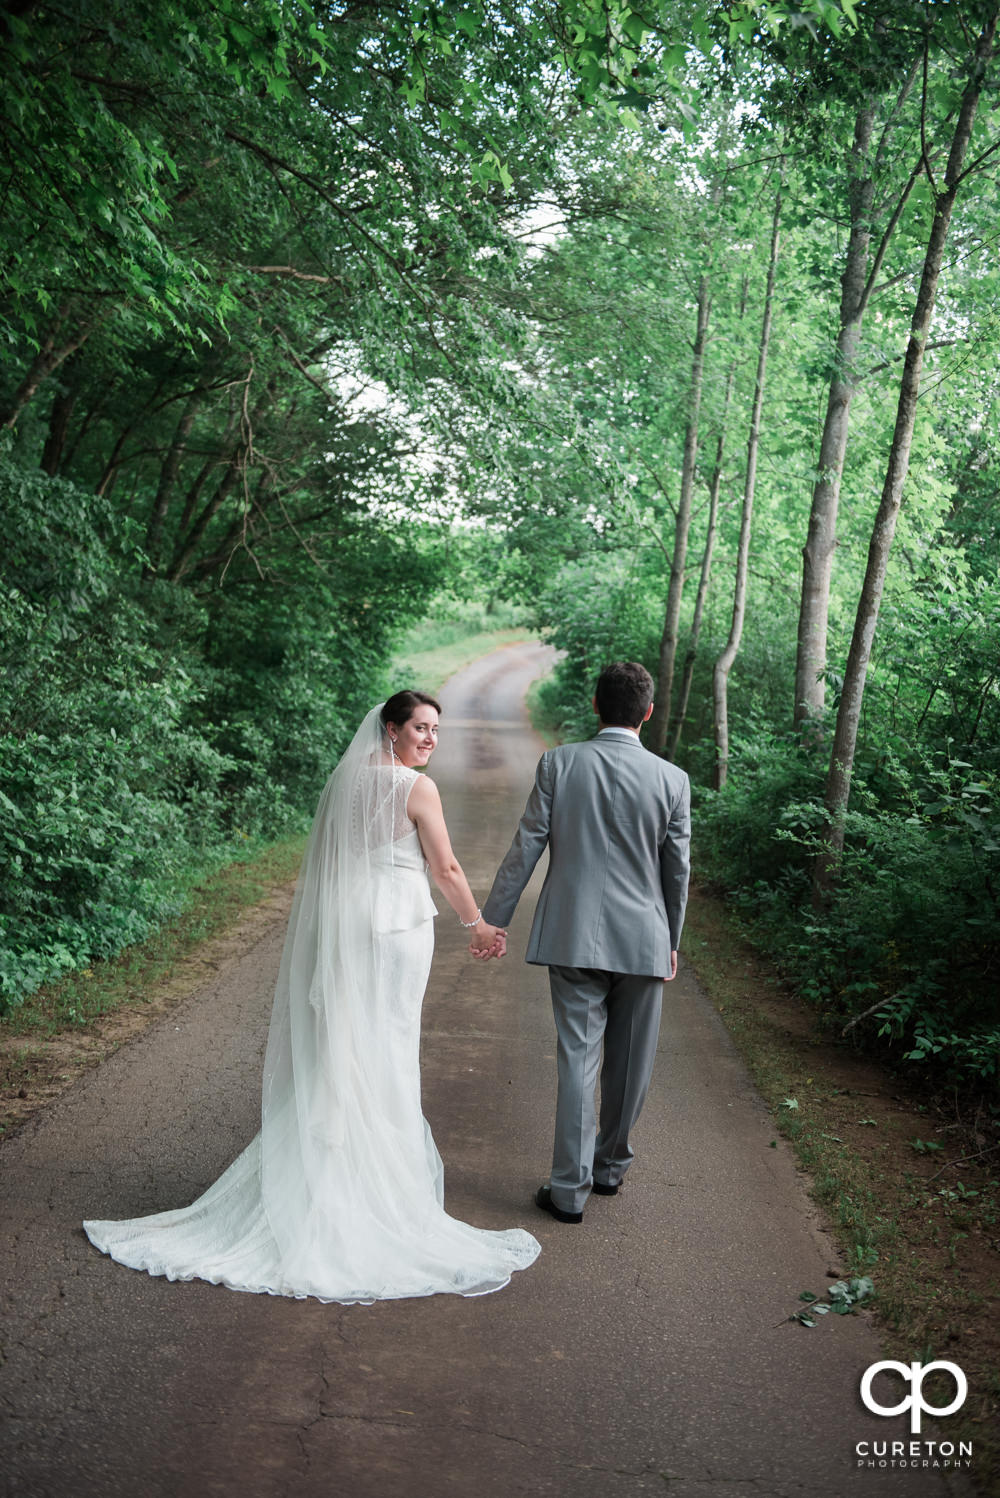 Bride and groom walking down the road.